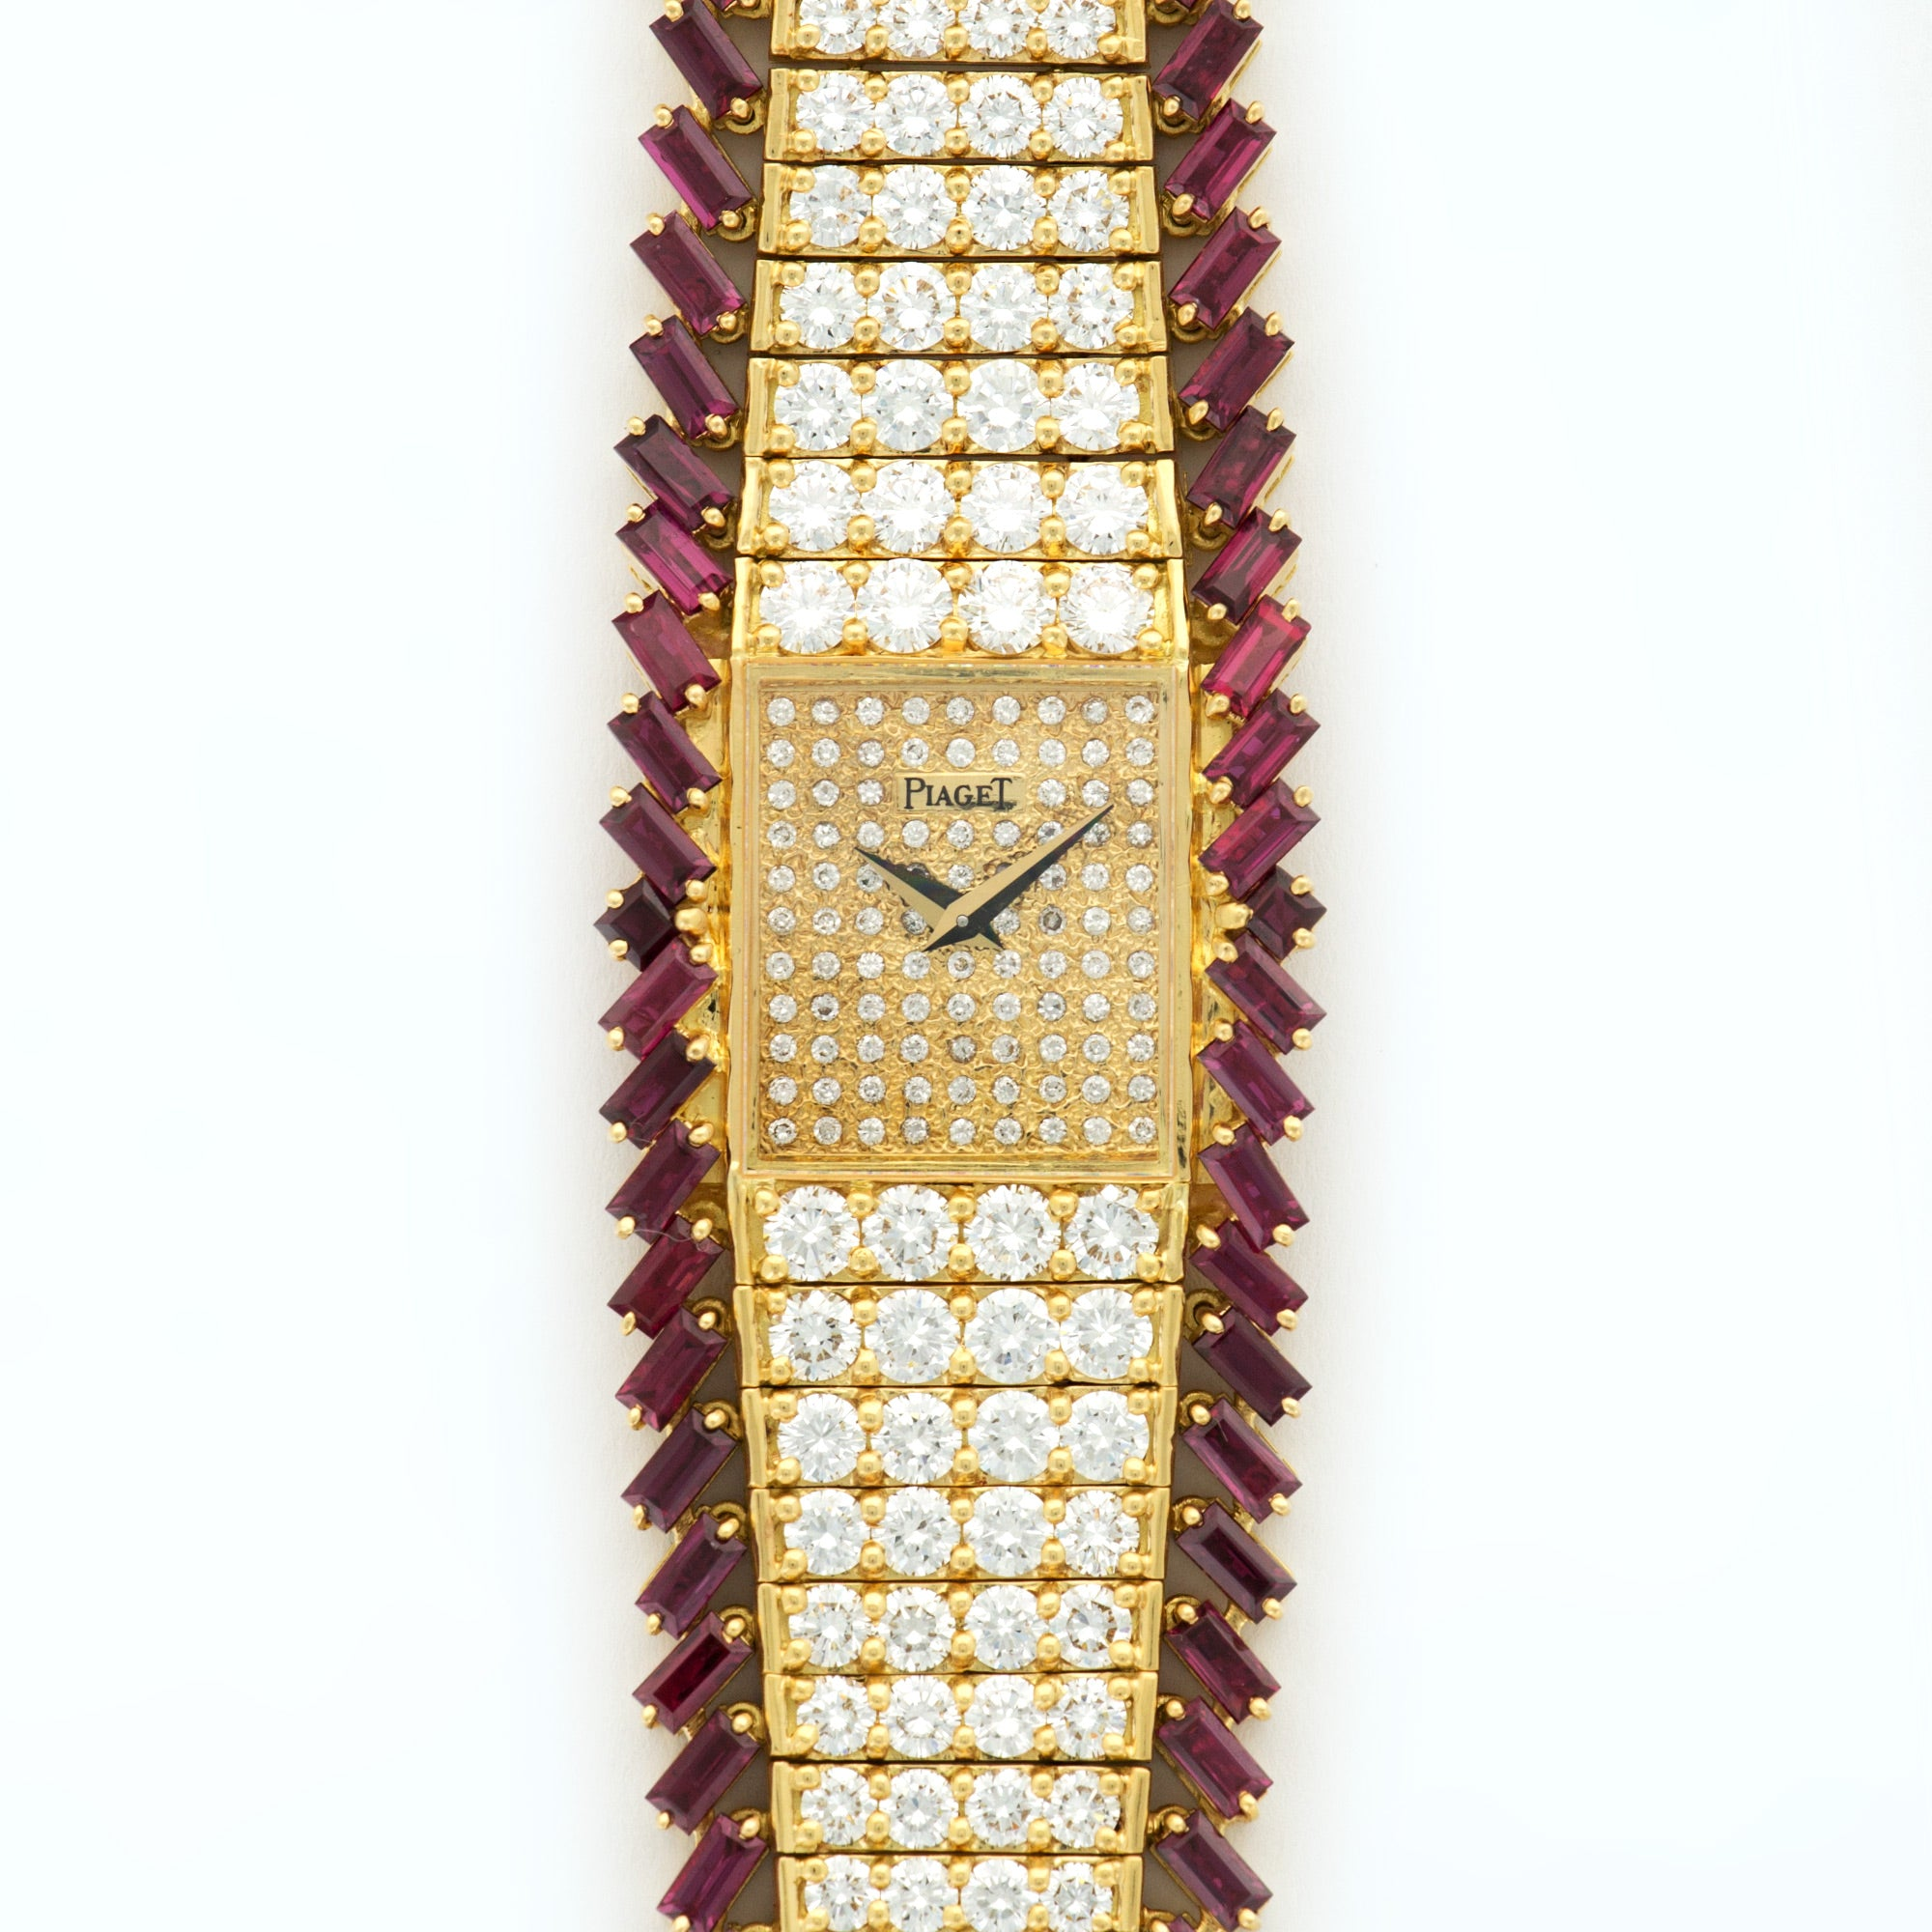 Piaget Vintage 41541 18k YG  Excellent Ladies 18k YG Pave Diamond 26mm Manual 1980s Yellow Gold with Diamonds & Rubies (165mm) N/A